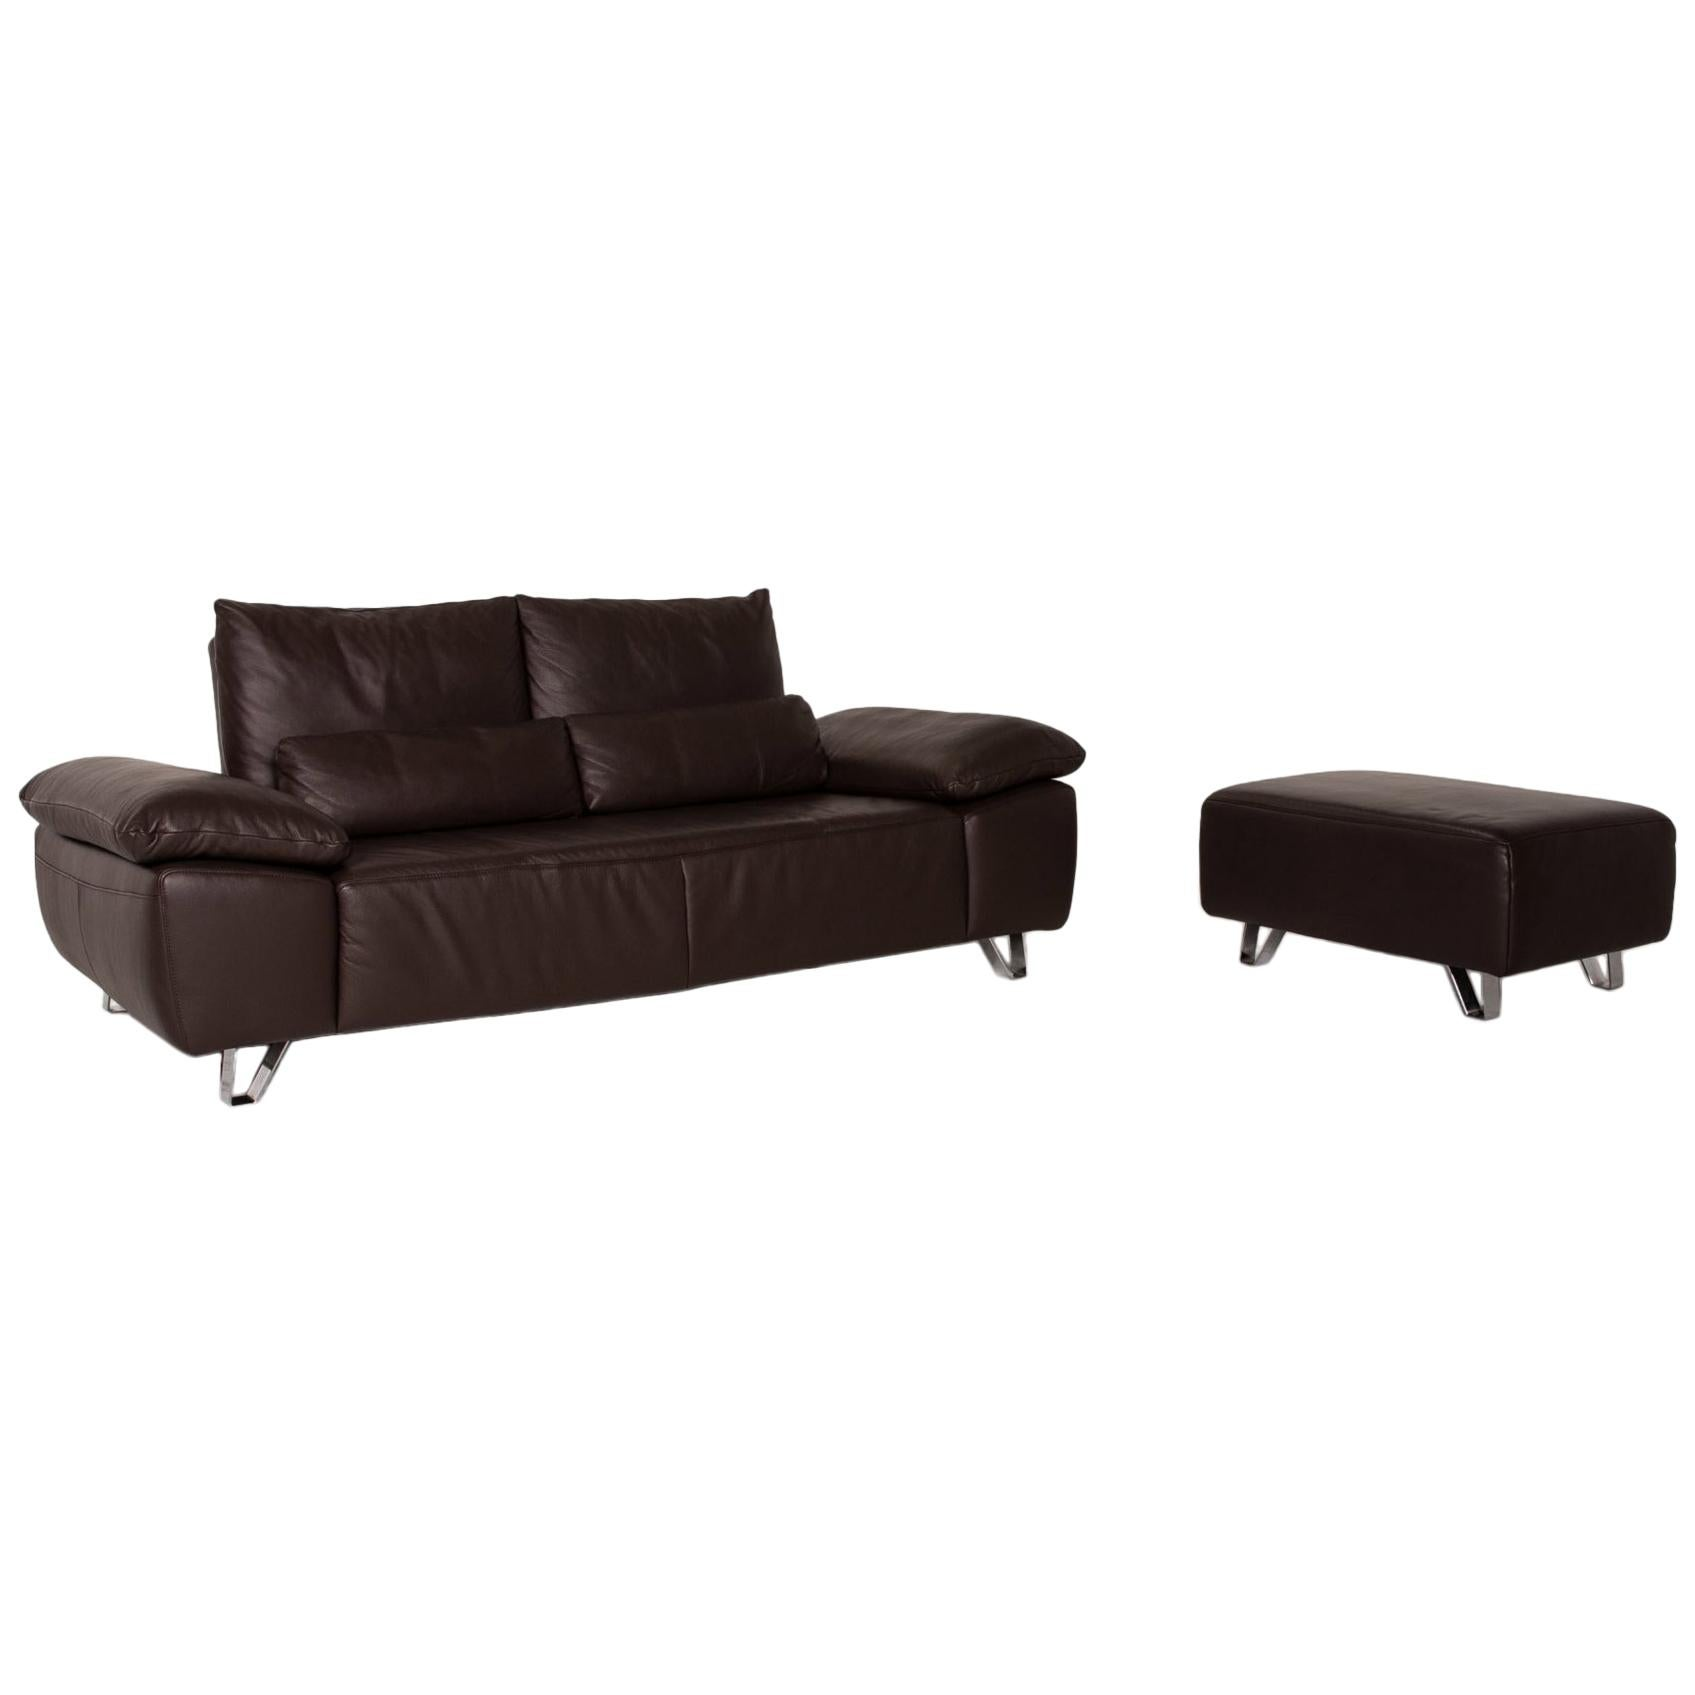 Musterring MR 680 Two-Seater Sofa and Stool Set Brown Leather Couch Function